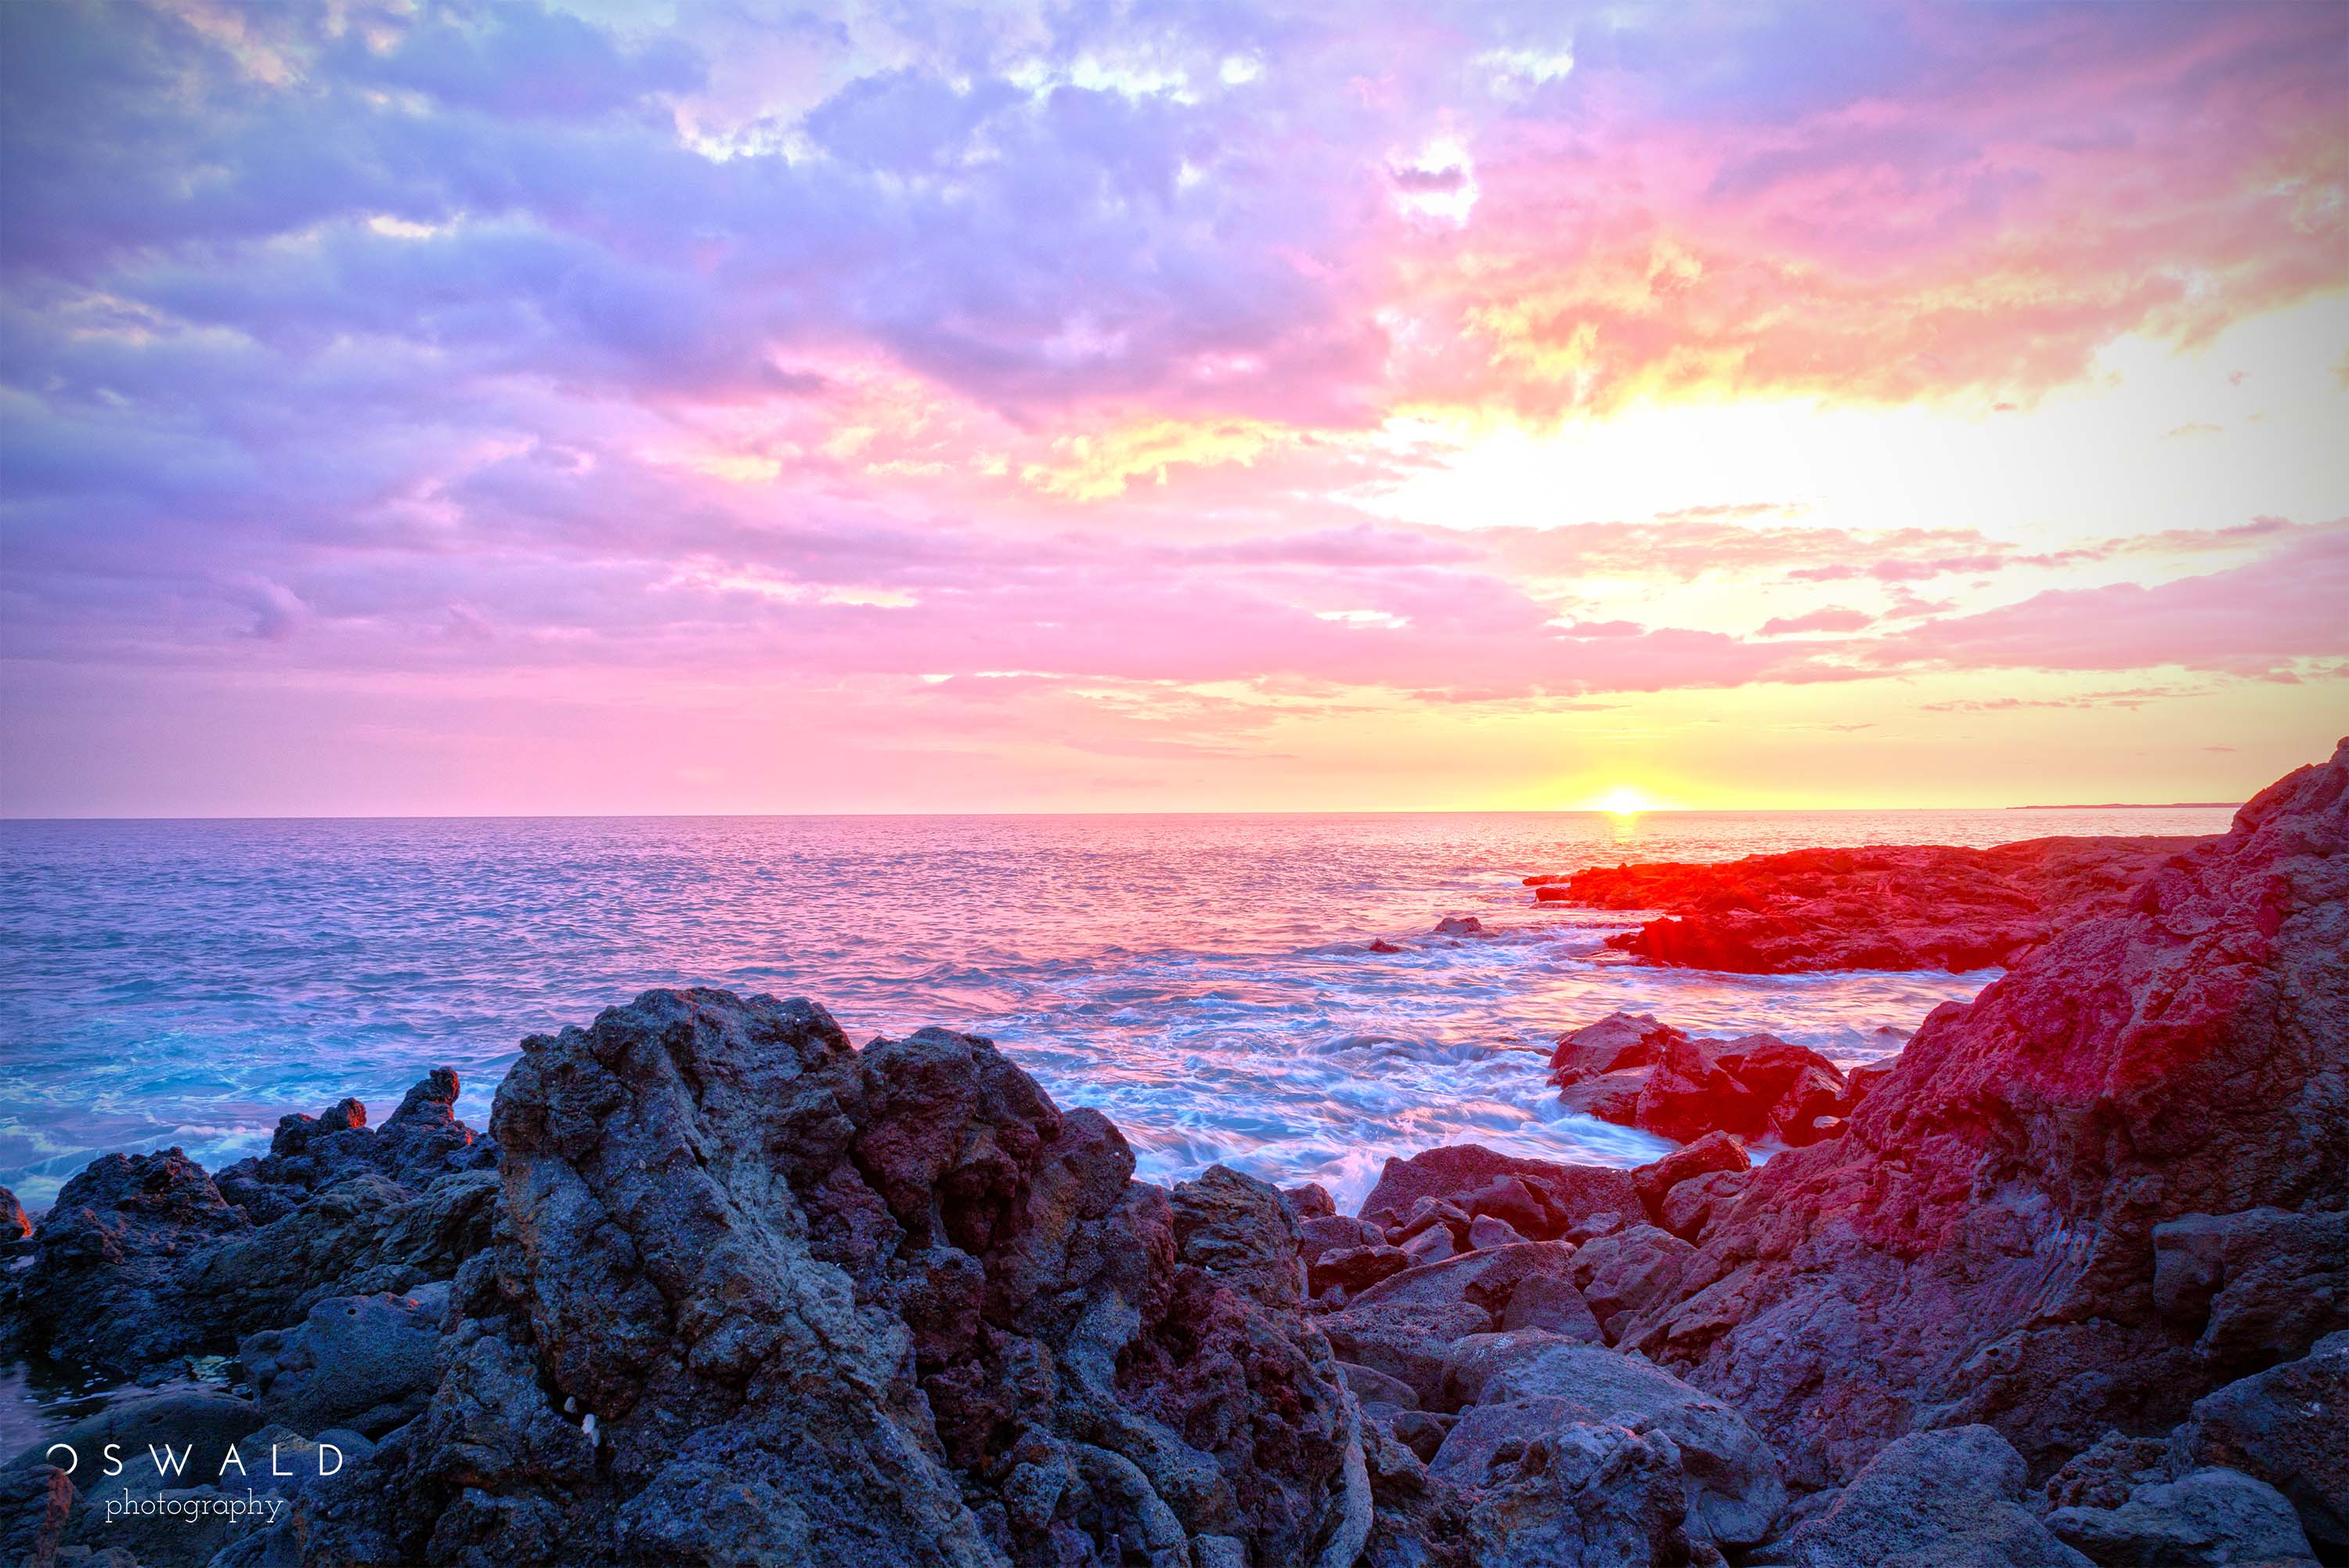 A sunset photograph of a rocky shore along the coast of Kona on the Big Island of Hawaii.